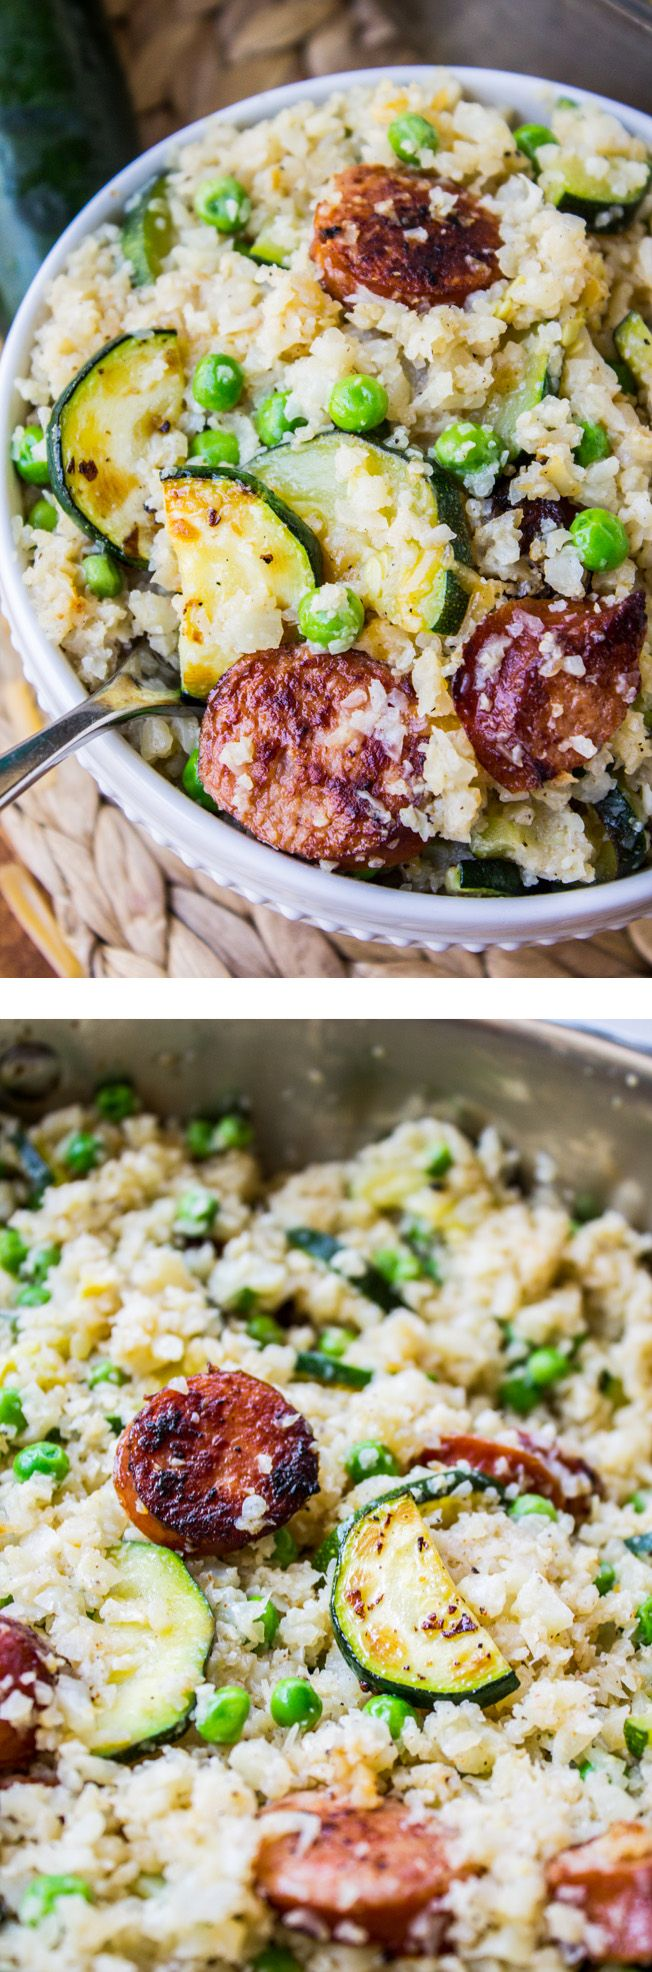 Cauliflower Rice Skillet with Zucchini and Kielbasa - This is the one-pot low-carb dinner you've been waiting for! It's an easy and healthy skillet-meal, perfect for a weeknight.